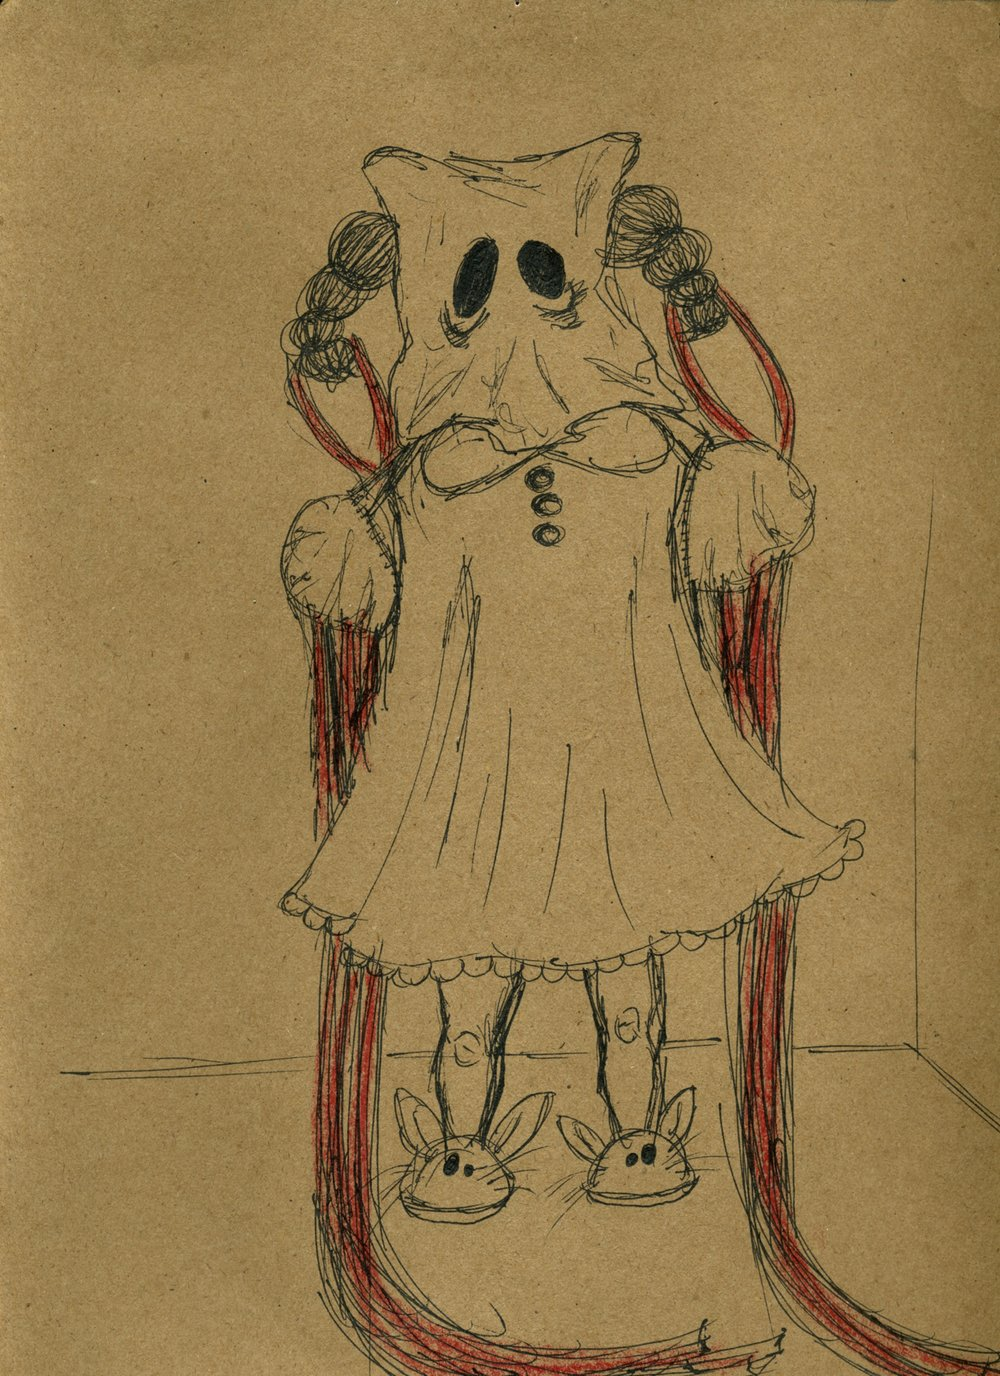 sleepwalker  pen & ink on kraft paper 2009